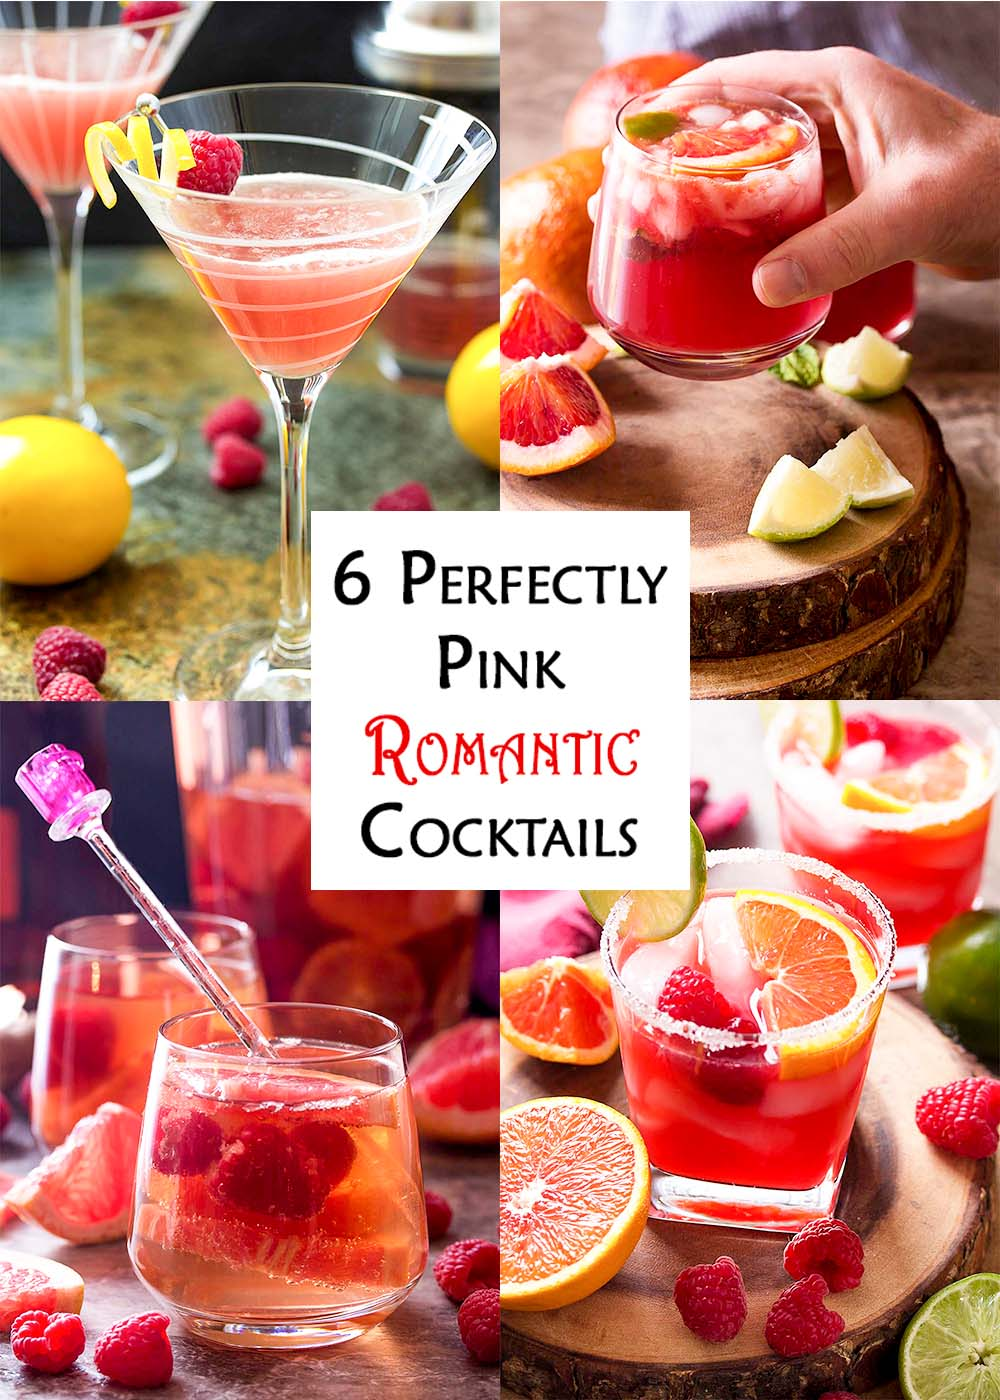 Collage of four cocktails with text overlay - Perfectly Pink Romantic Cocktails.